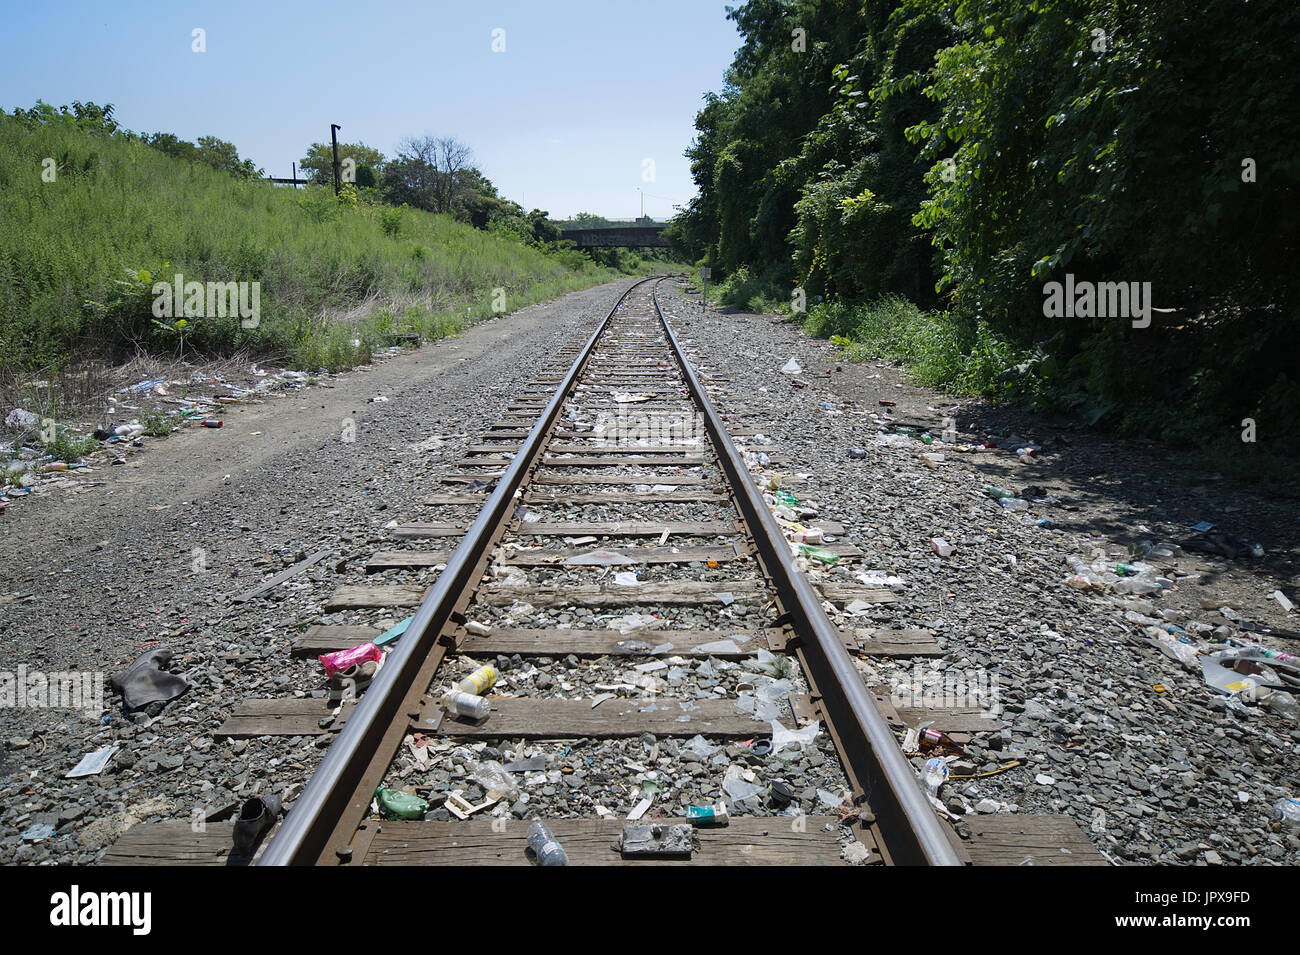 Single freight train track used by Conrail curves under North Mascher St Bridge in the Fairhill/West Kensington section of Philadelphia, Pennsylvania. - Stock Image